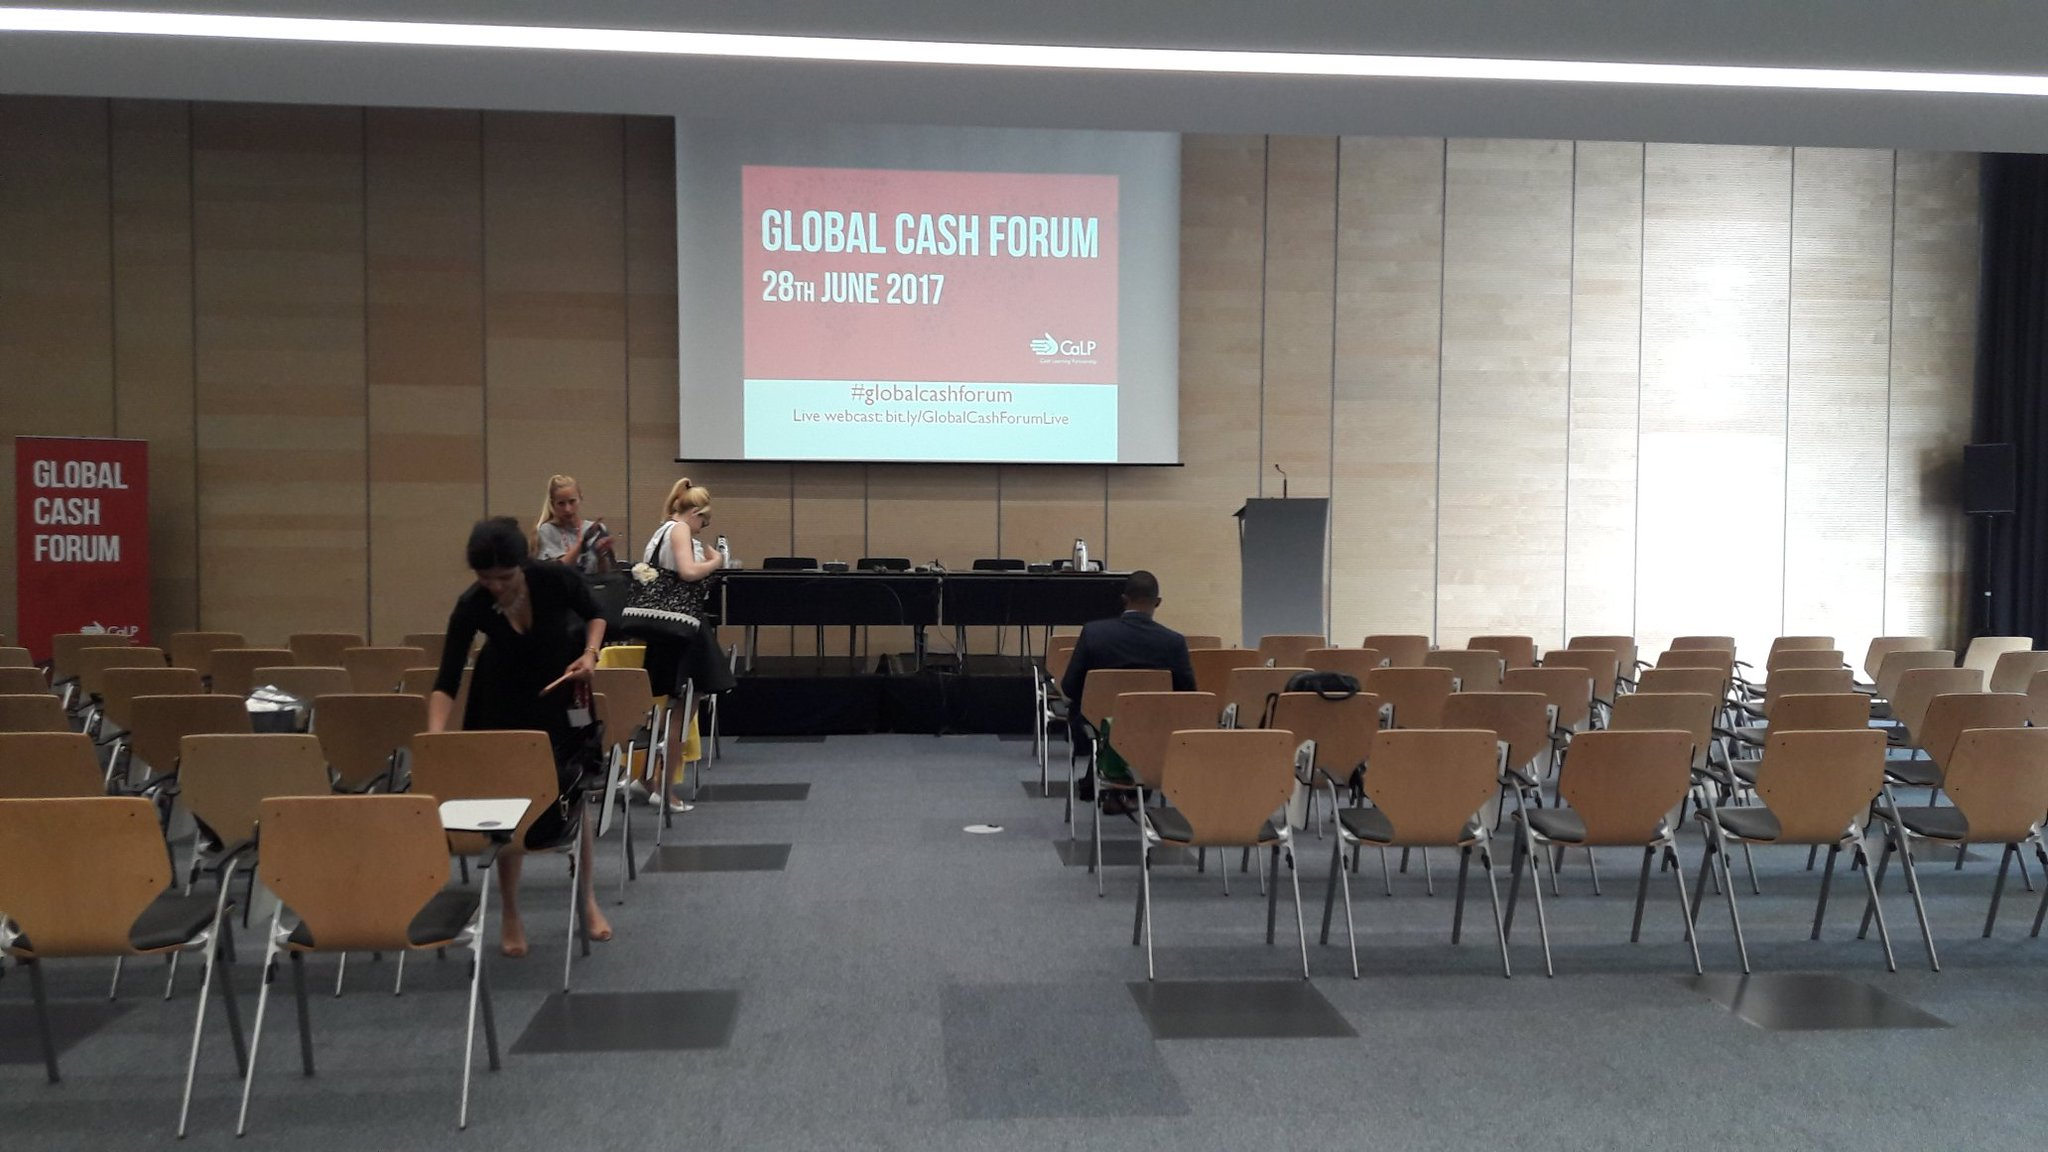 Here we are! Follow @cashlearning #GlobalCashForum on Twitter and livestream https://t.co/yJpPNEW4J8 to contribute to our discussions! https://t.co/gB8cTcLHiP